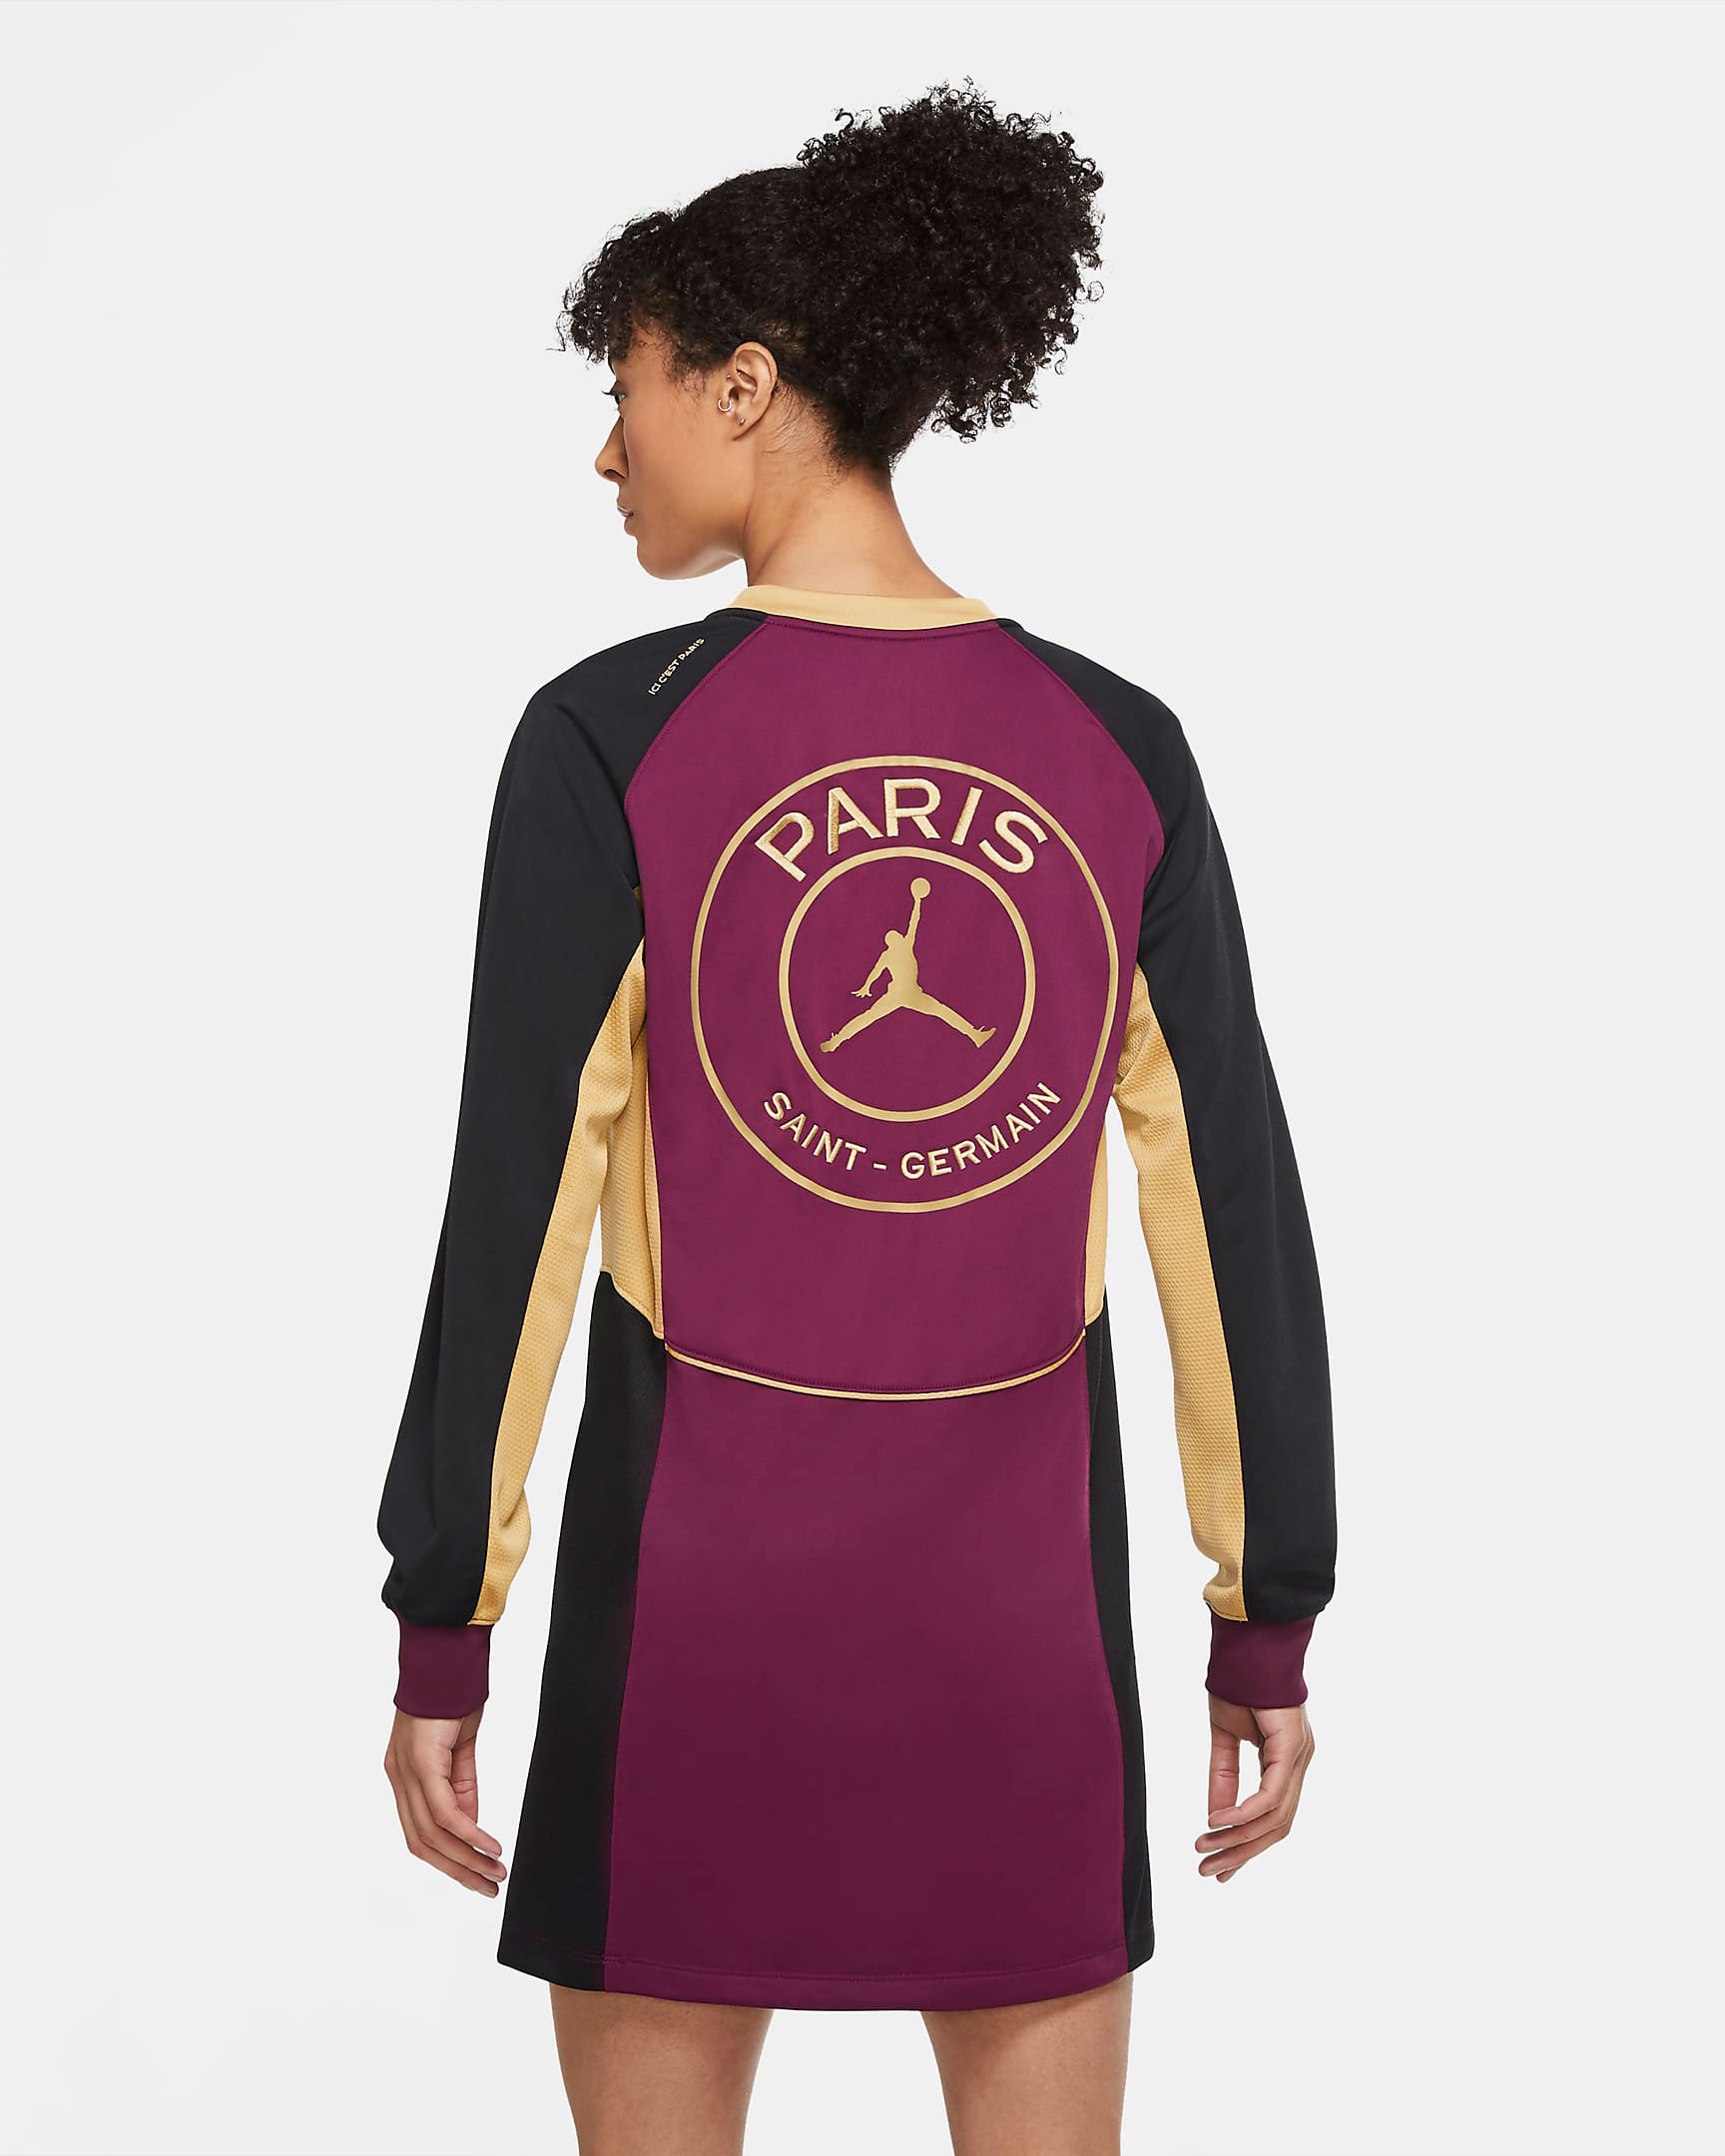 jordan-4-psg-paris-saint-germain-womens-dress-2